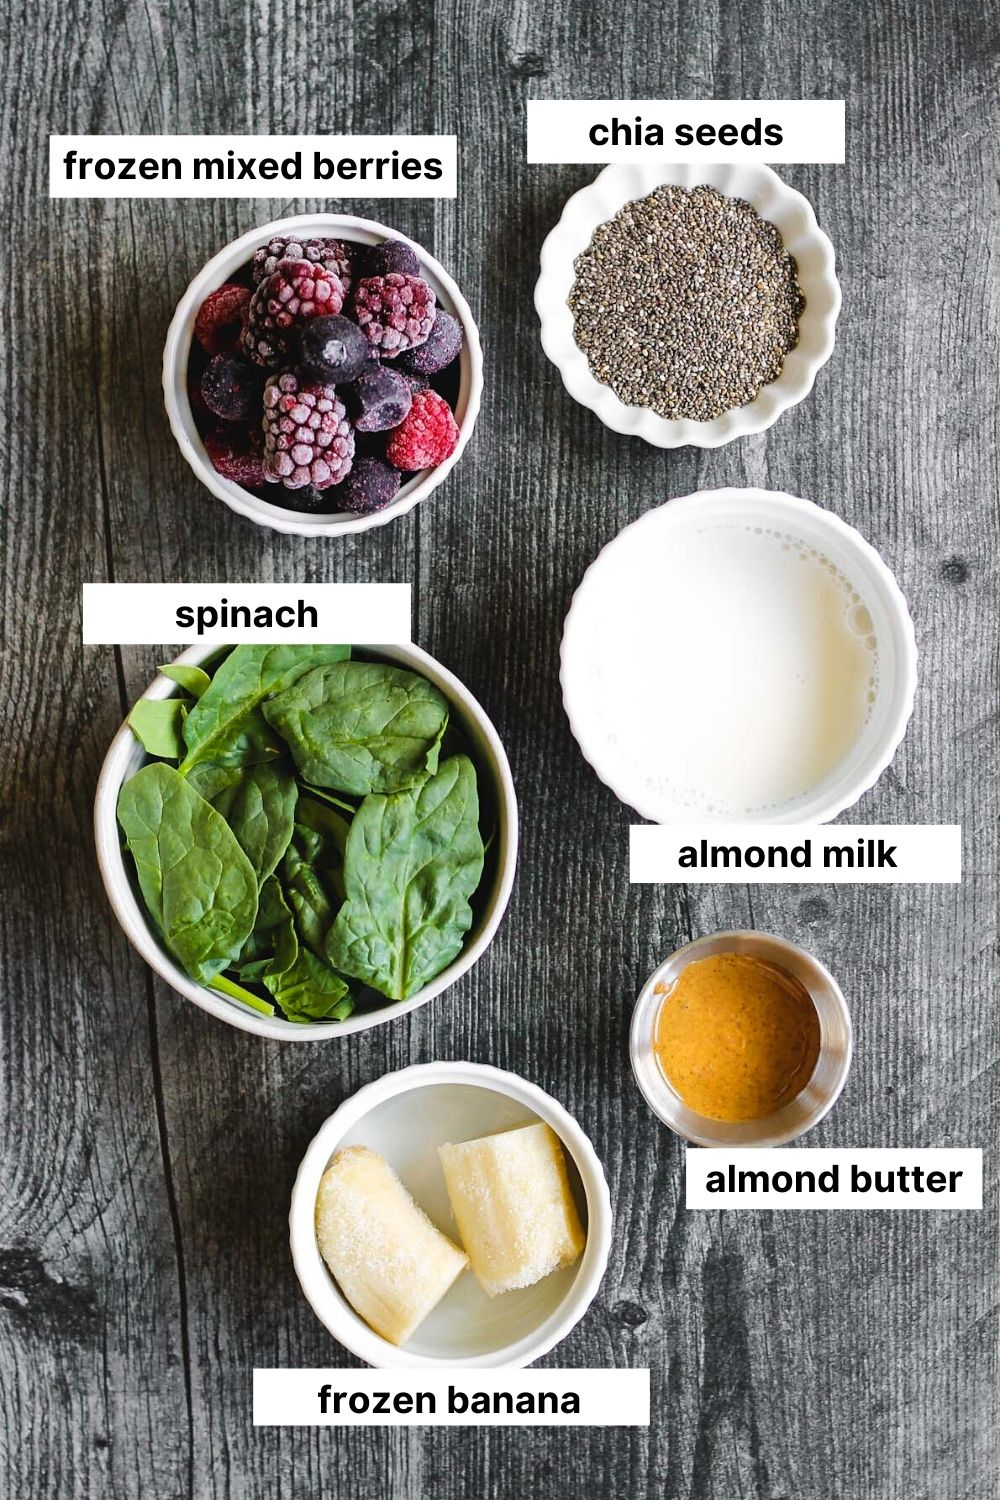 labeled ingredients used in this smoothie (frozen berries, chia seeds, spinach, almond milk, almond butter, frozen banana)